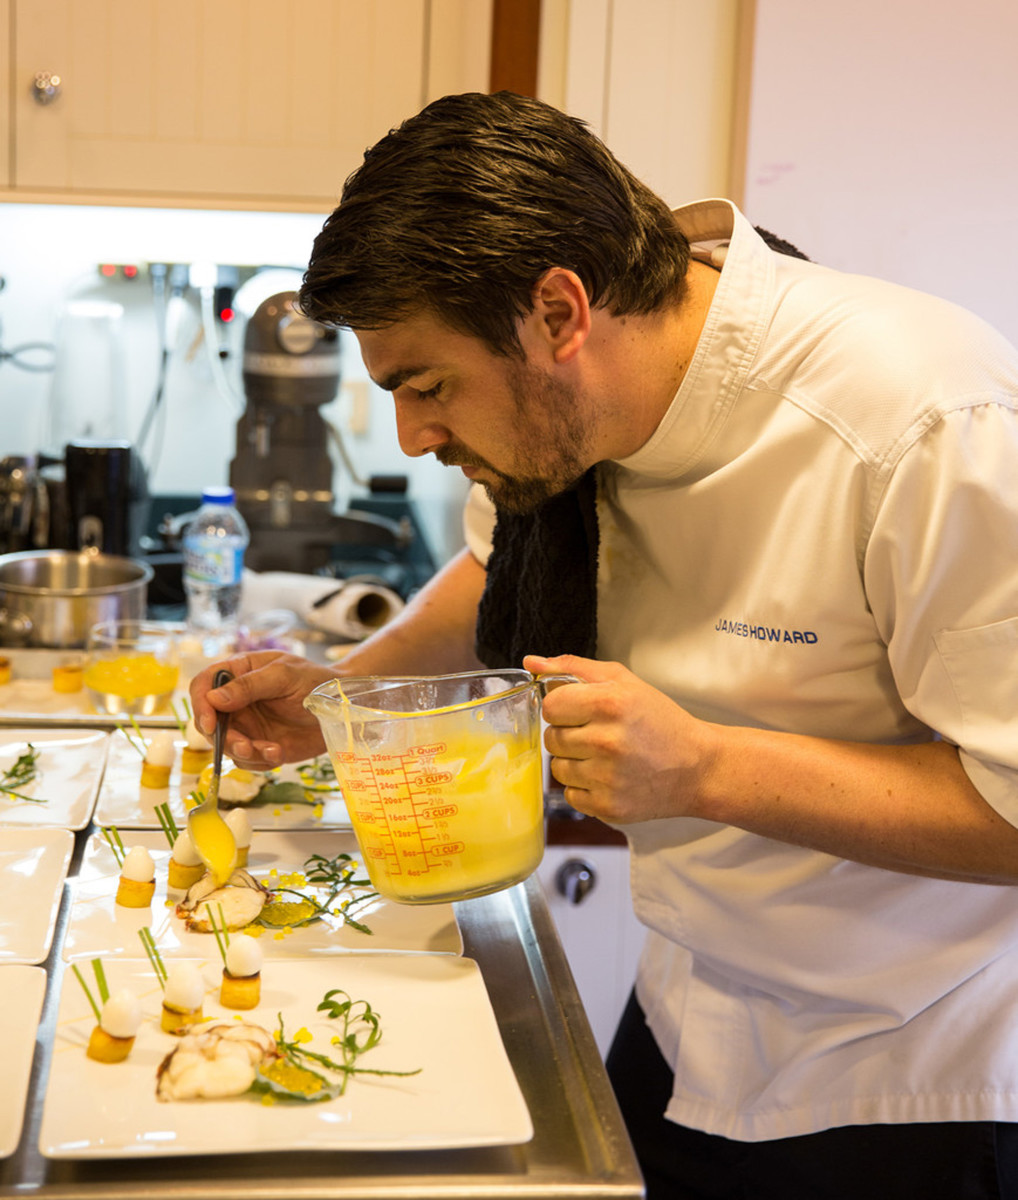 Chef James Howard competes in the annual chefs' competition at the Antigua Charter Yacht Show.